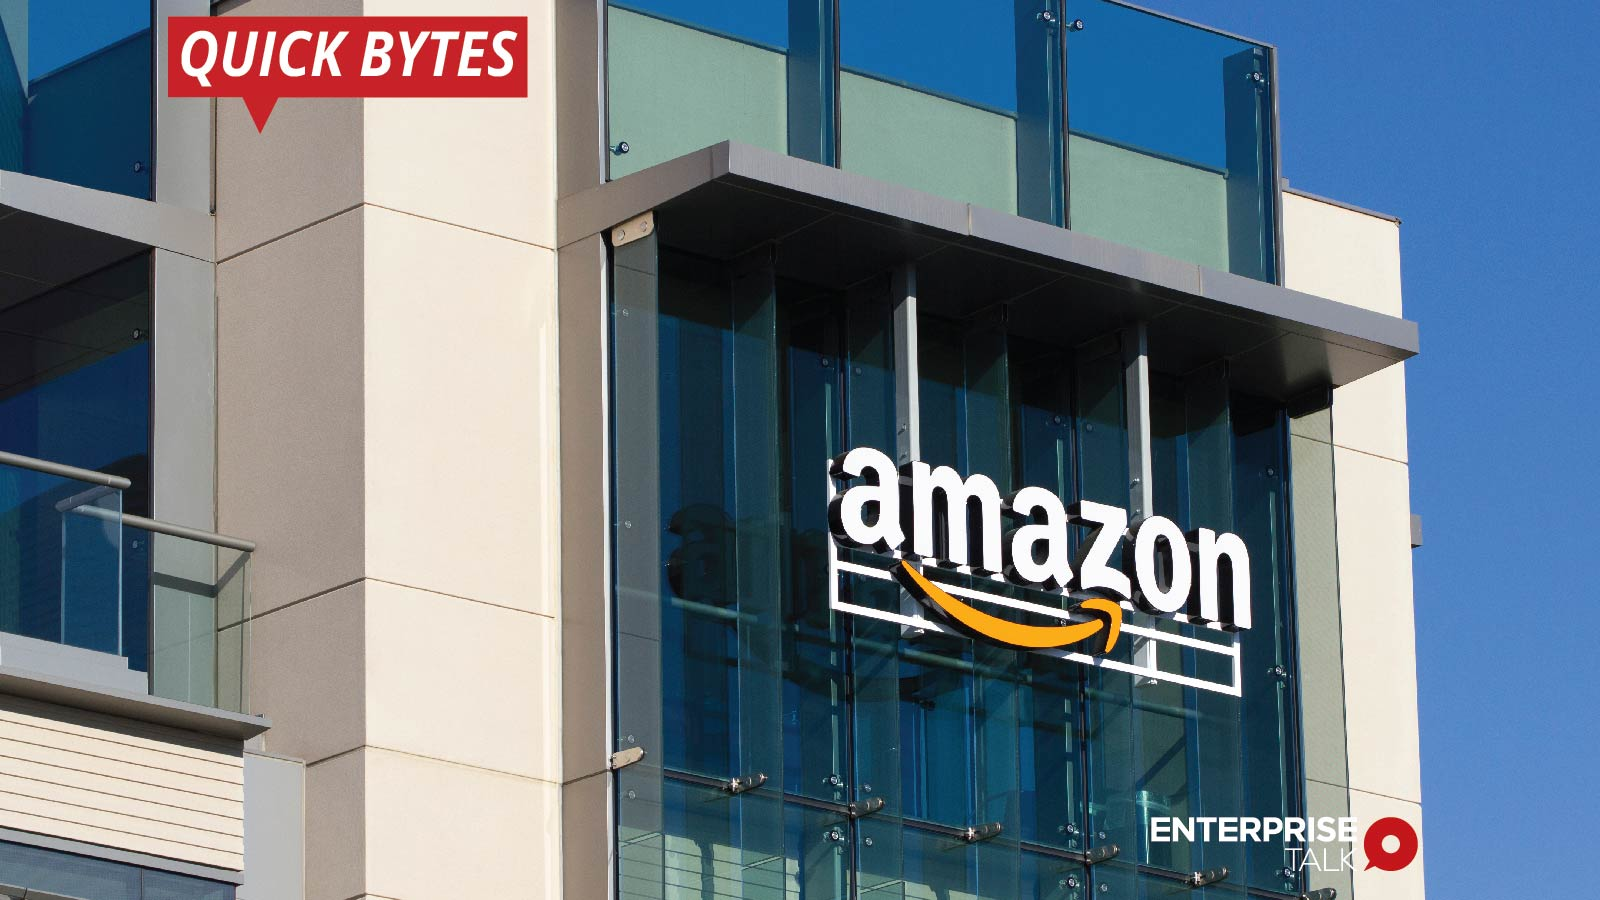 Amazon Faces EU Anti-trust Charges Over Misuse of Big Data